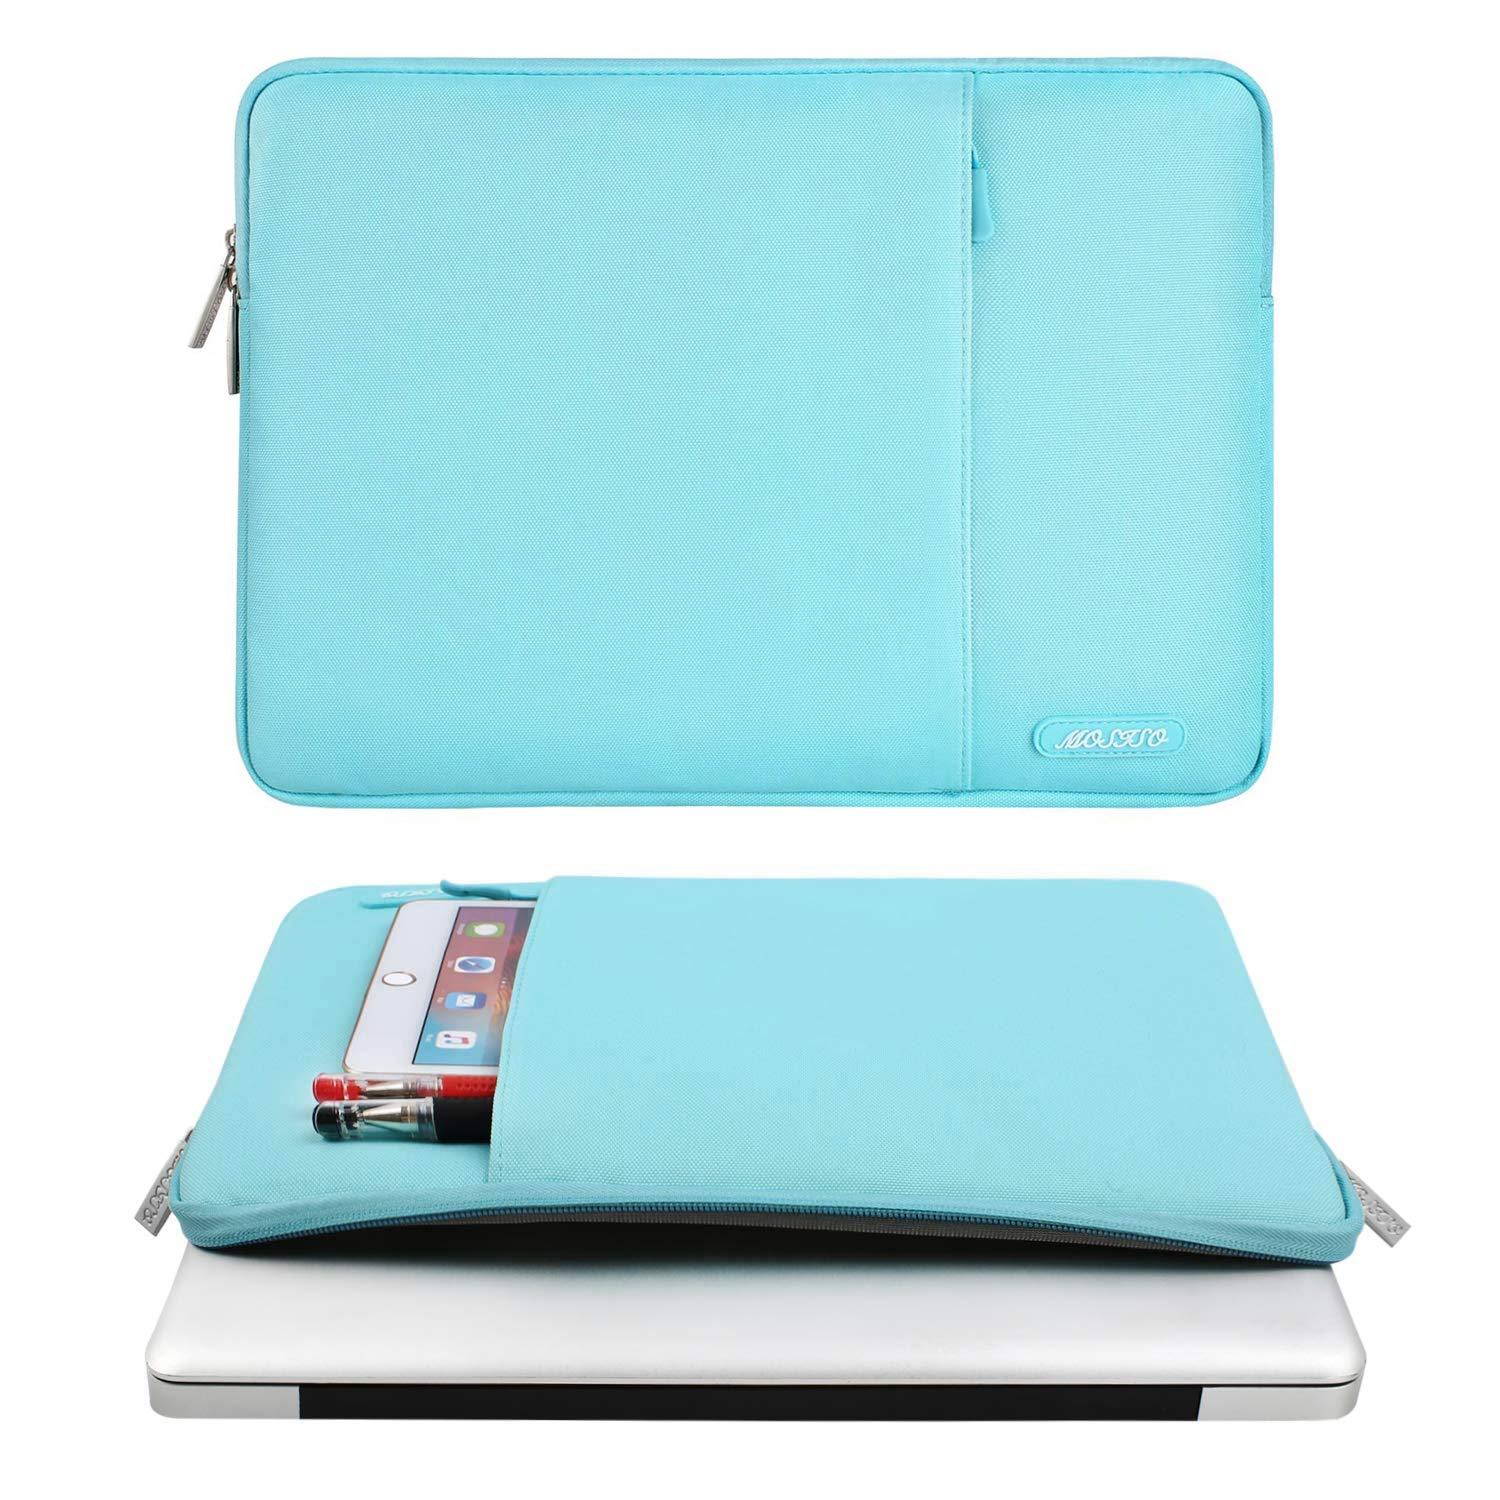 13 inch New MacBook Pro A1989 A1706 A1708 Deep Teal Notebook MOSISO Laptop Sleeve Compatible 2018 New MacBook Air 13 inch with Retina Display A1932 Polyester Bag with Vertical Pocket